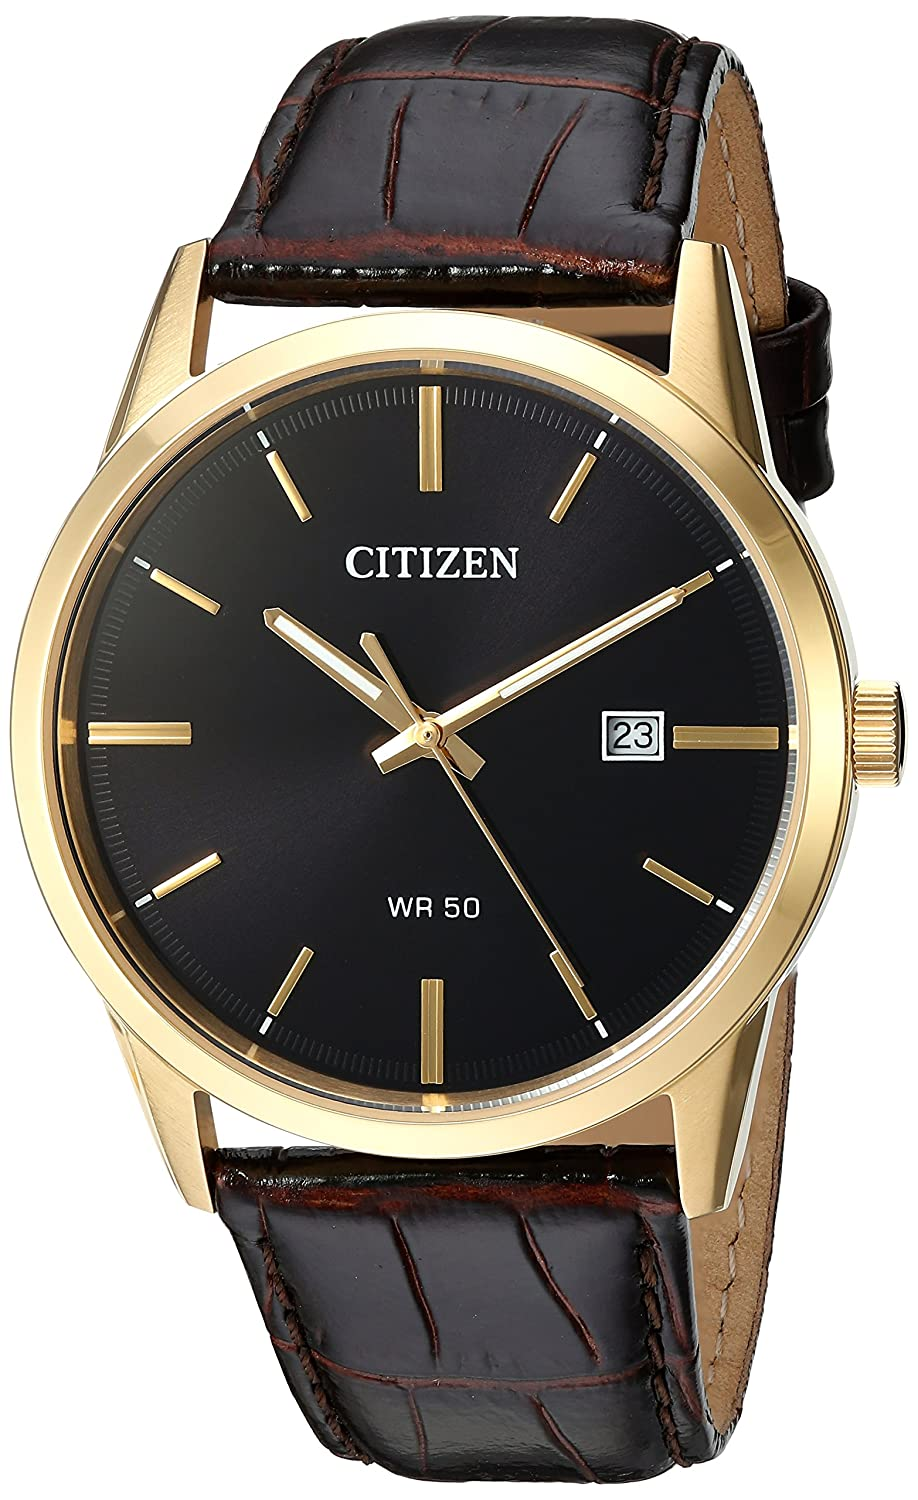 Citizen Men's Quartz Stainless Steel And Leather Casual Watch, Color Brown (Model: Bi5002 06 E) by Citizen